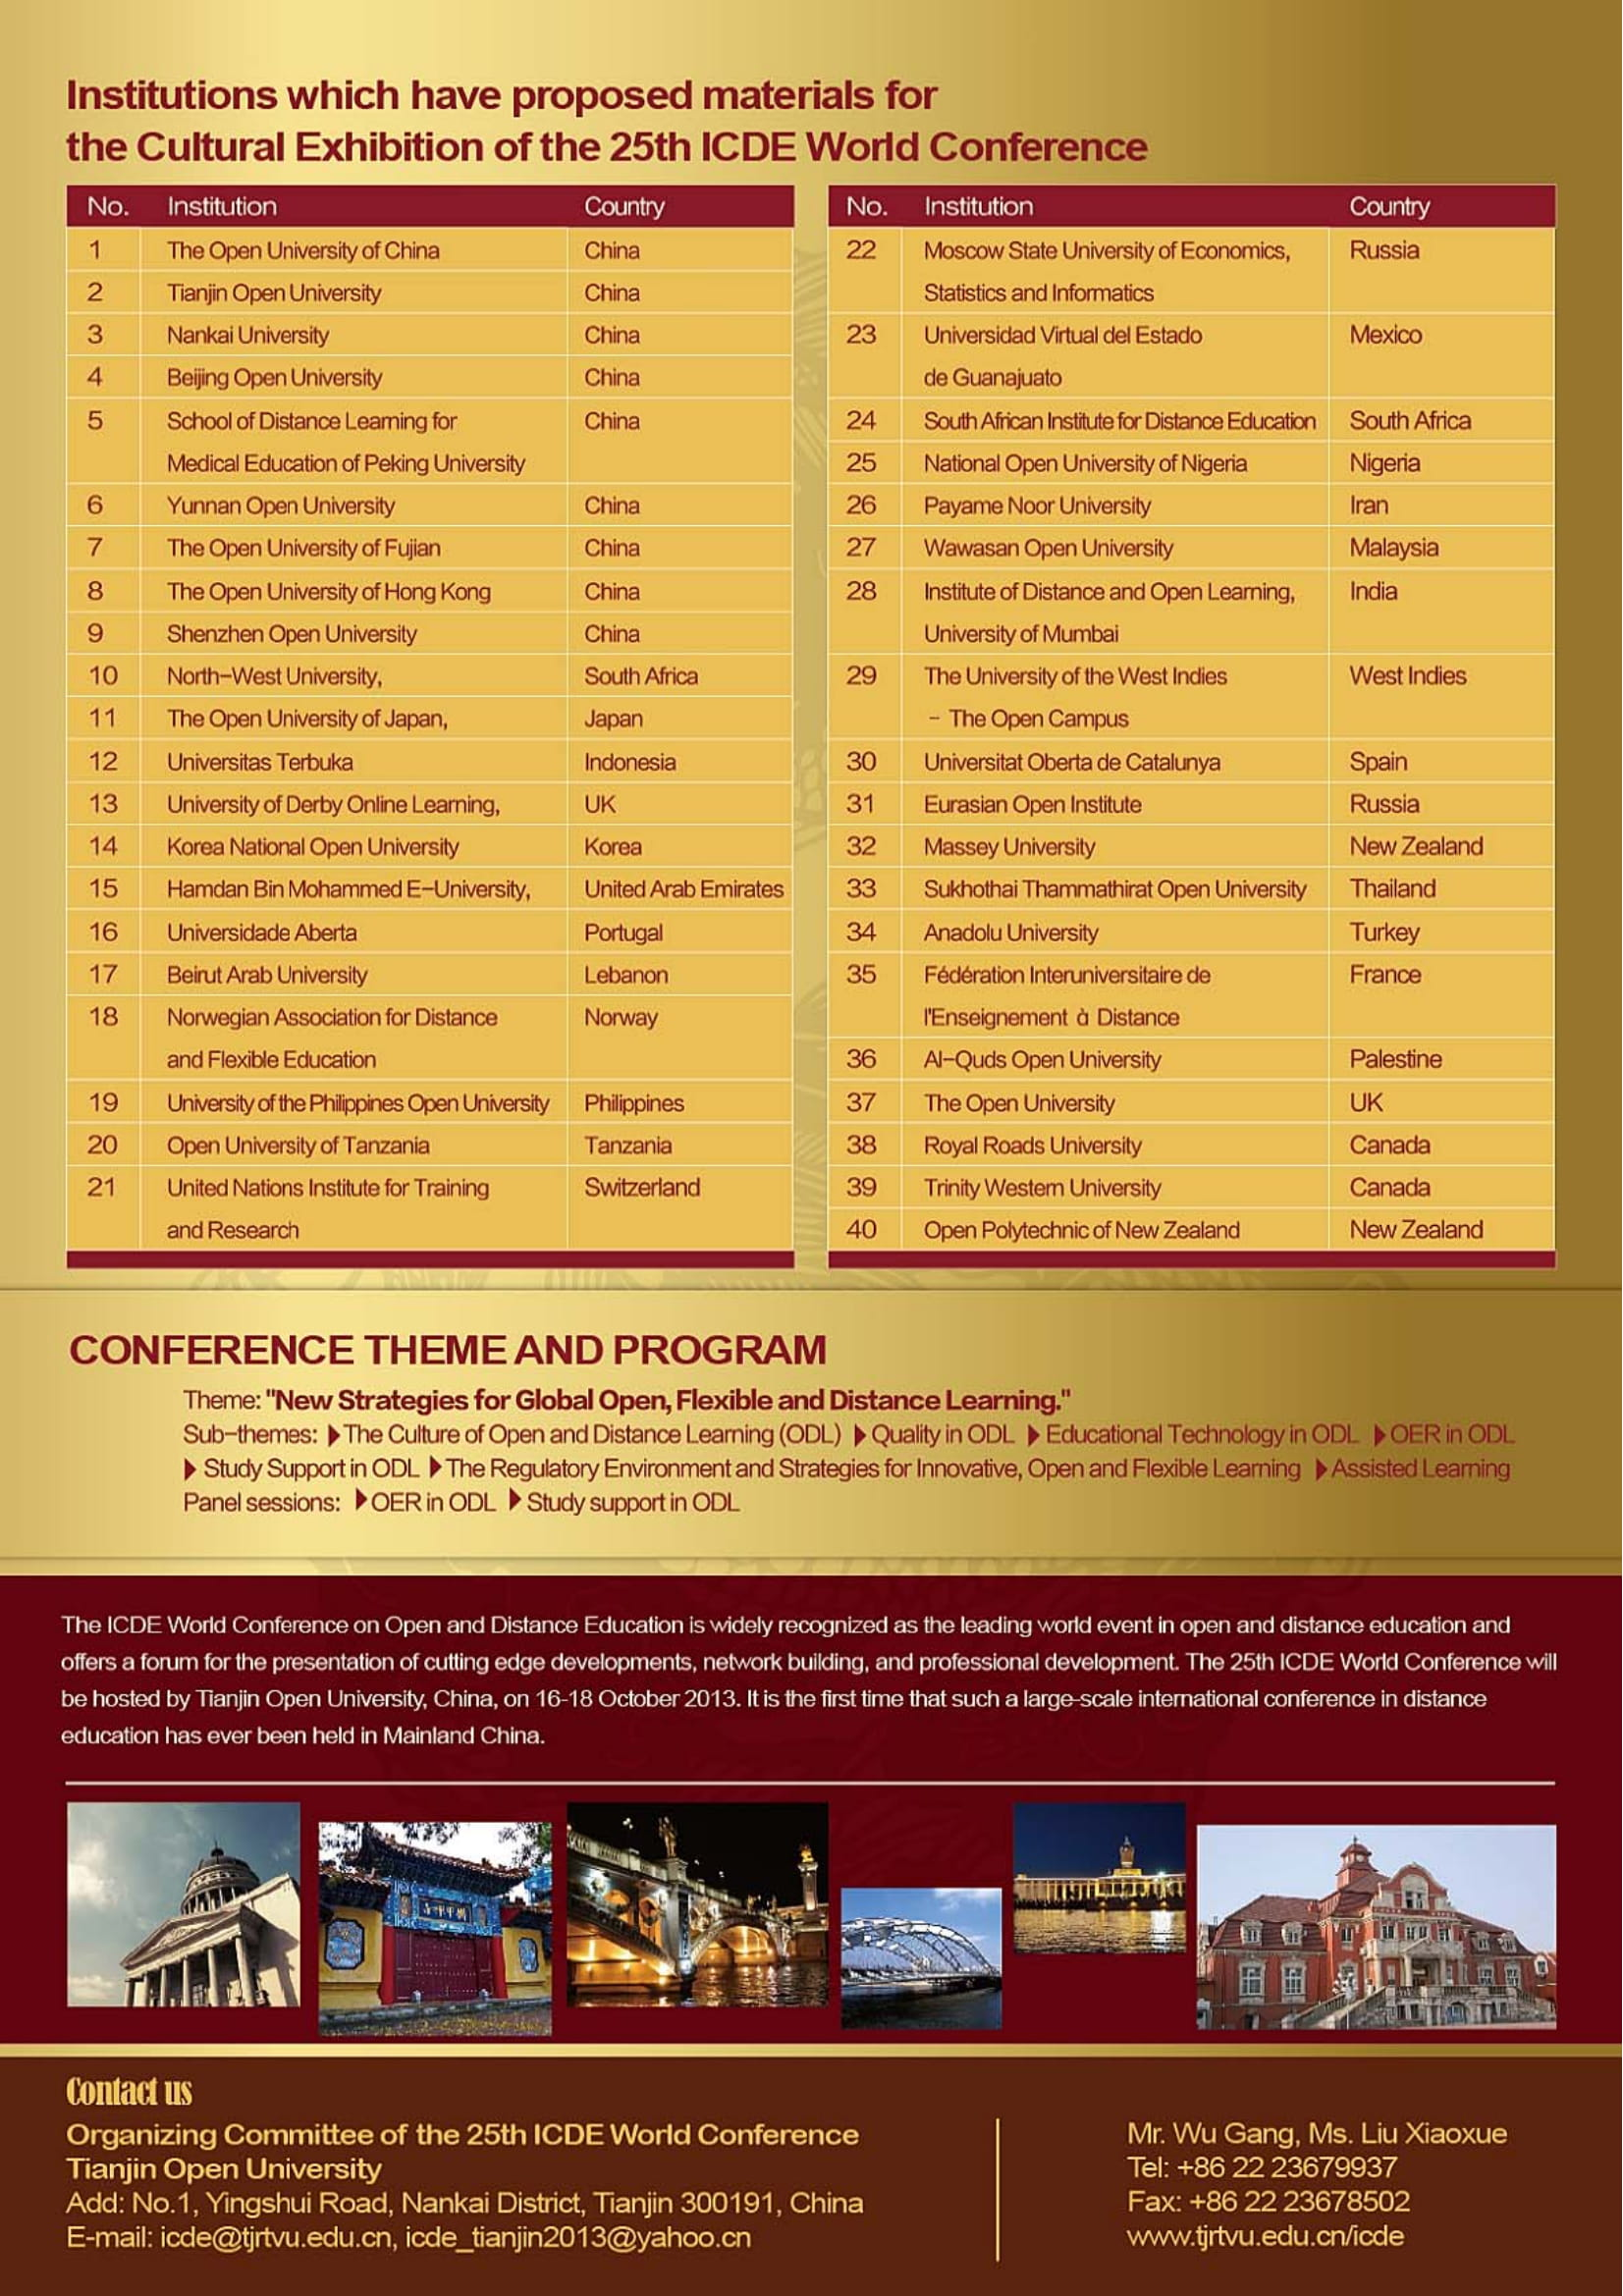 ICDE 25th World Conference flyer v.3 20130903-2.jpg